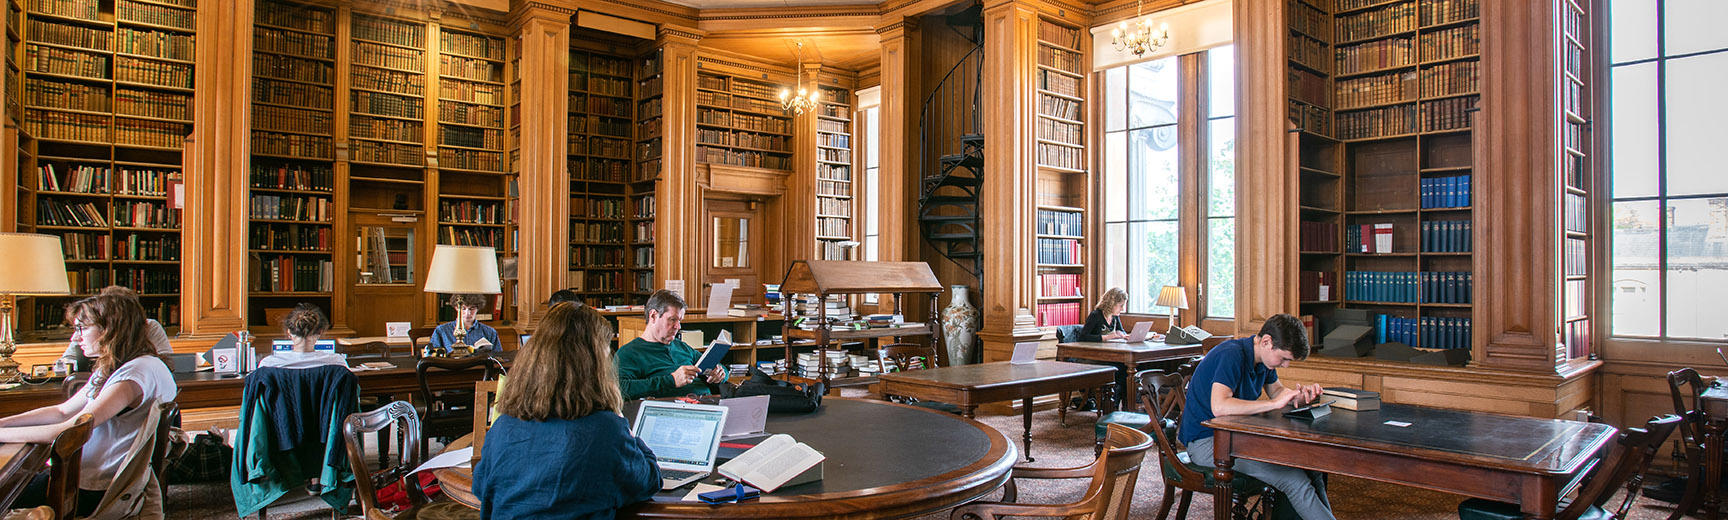 Students sit at individual desks in a wood-panelled room with bookselves